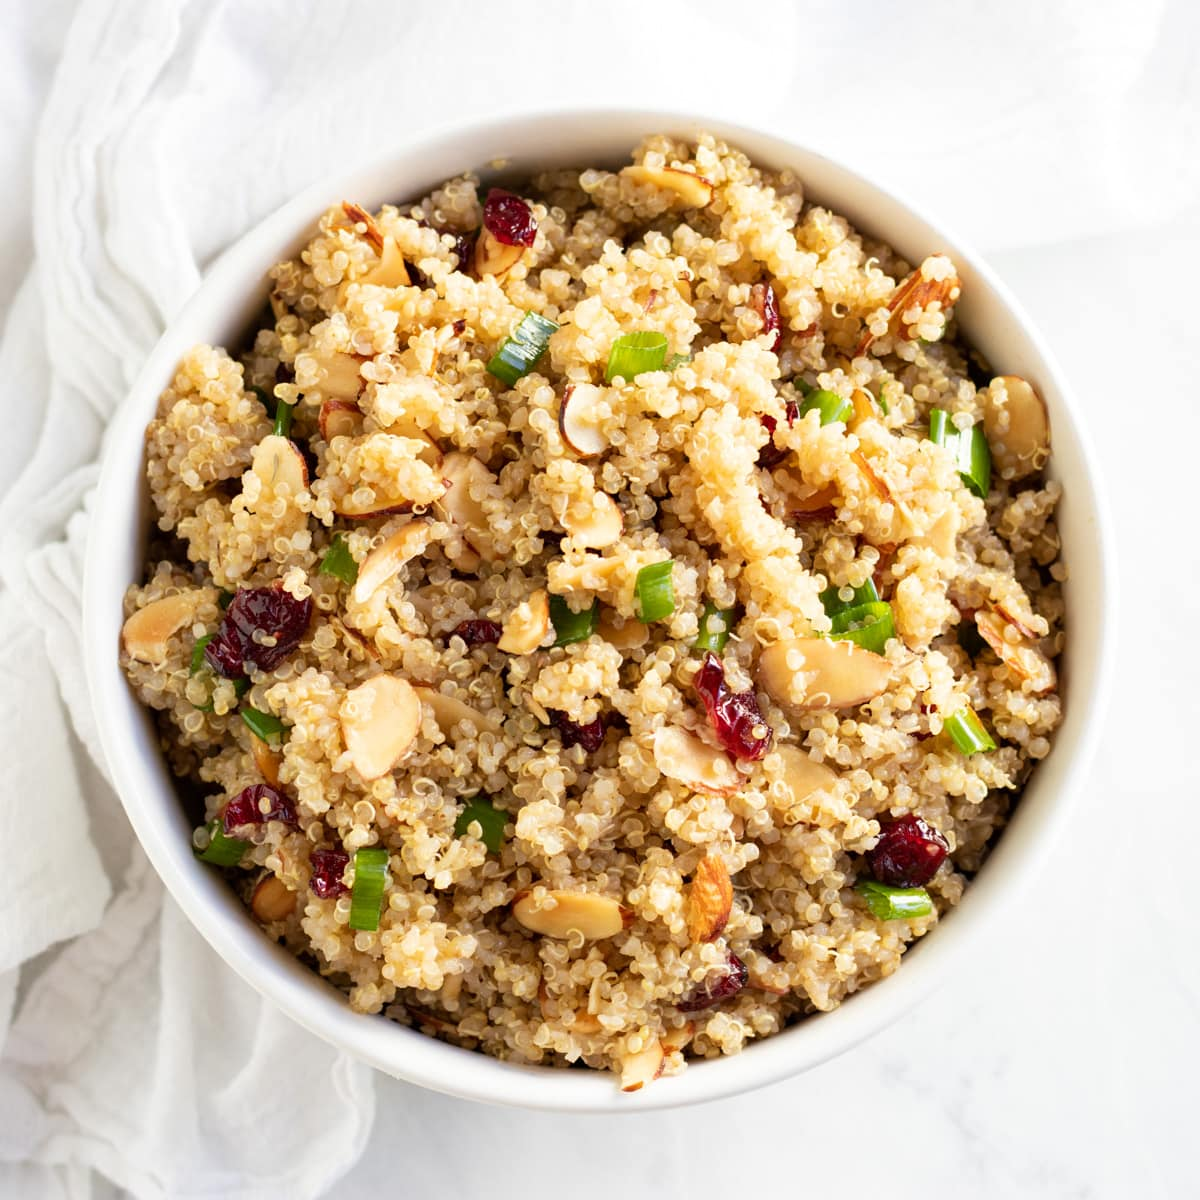 A white bowl filled with low FODMAP quinoa with cranberries and almonds